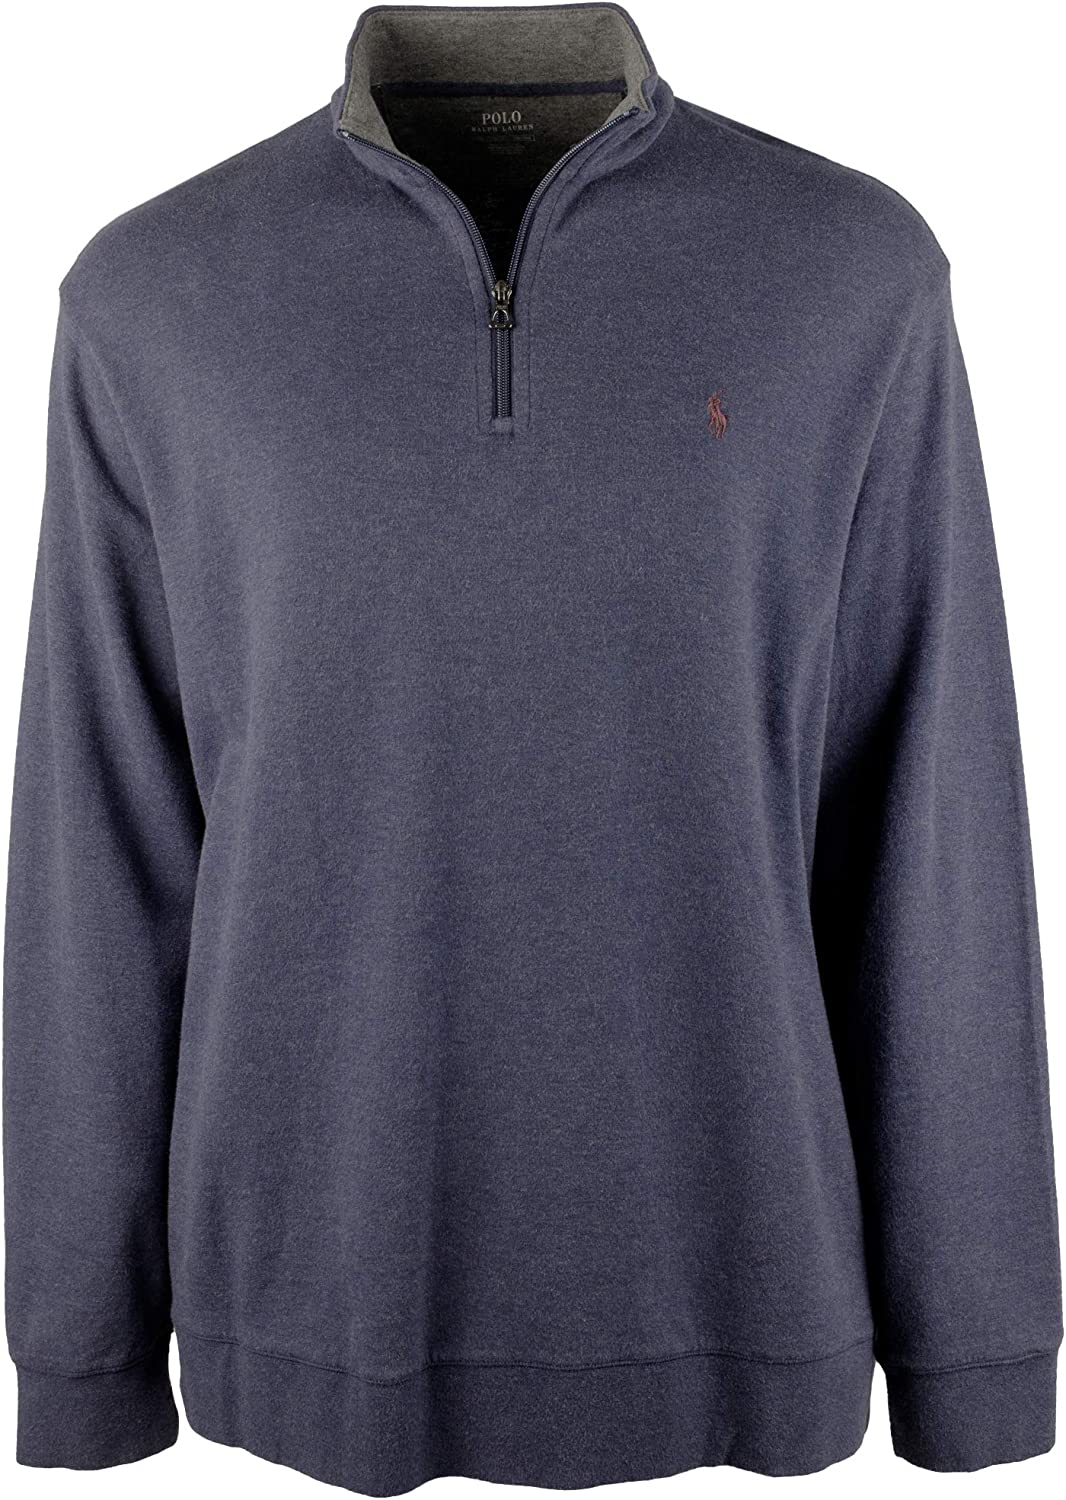 Ralph Lauren Polo Mens Big and Tall 1/2 Zip Jersey Pullover